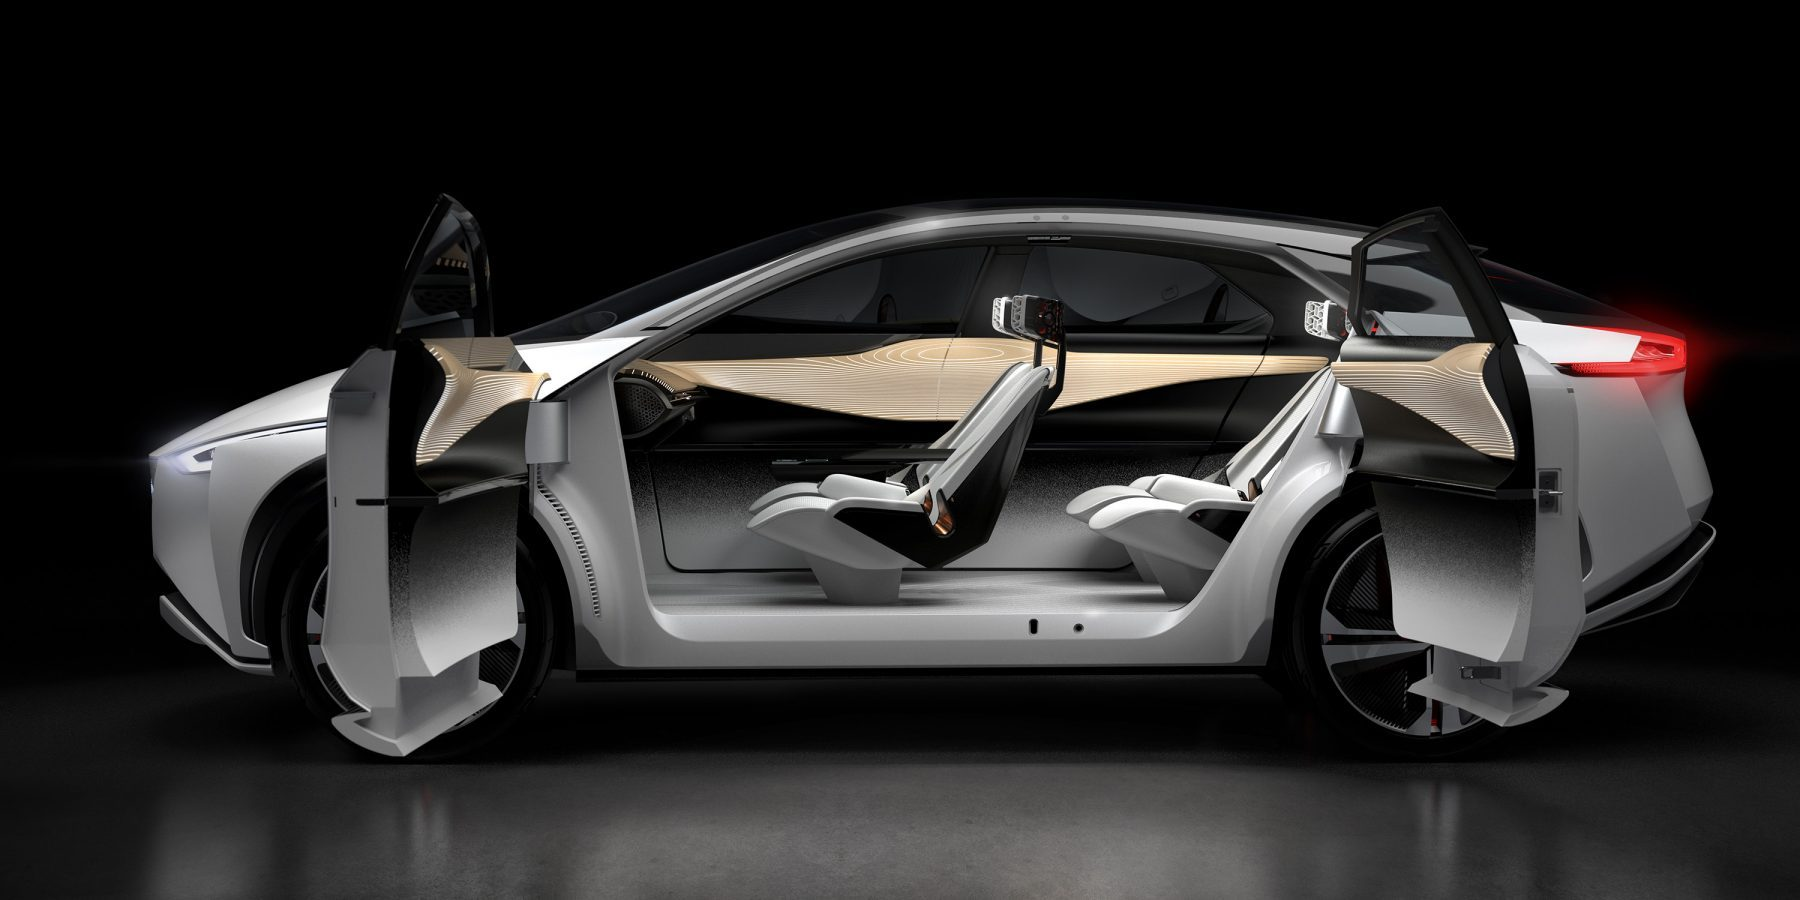 Nissan IMx concept car exterior profile with doors open